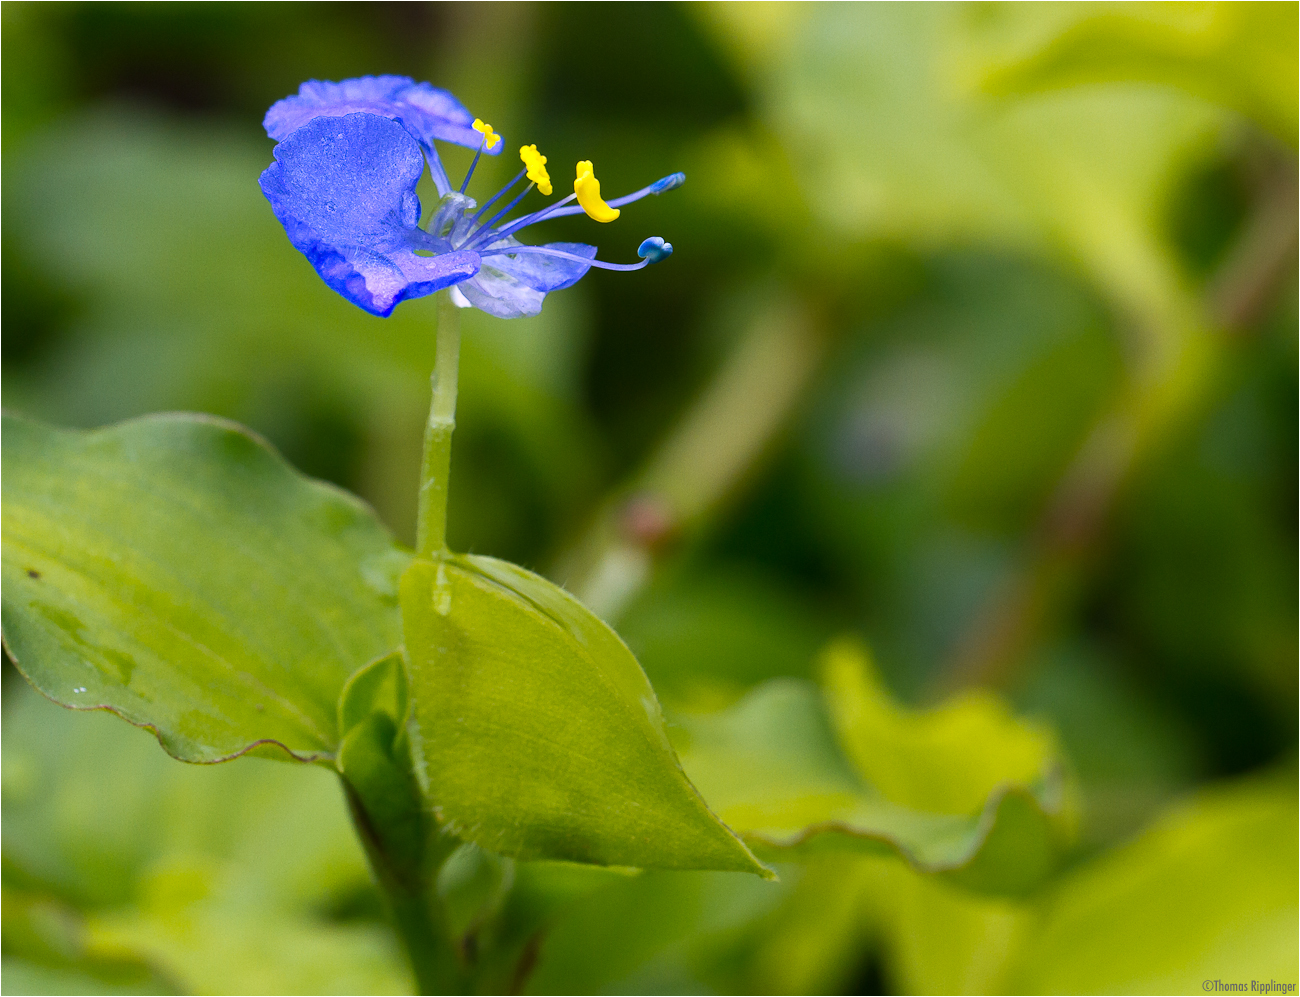 Bengalische Tagblume (Commelina benghalensis).